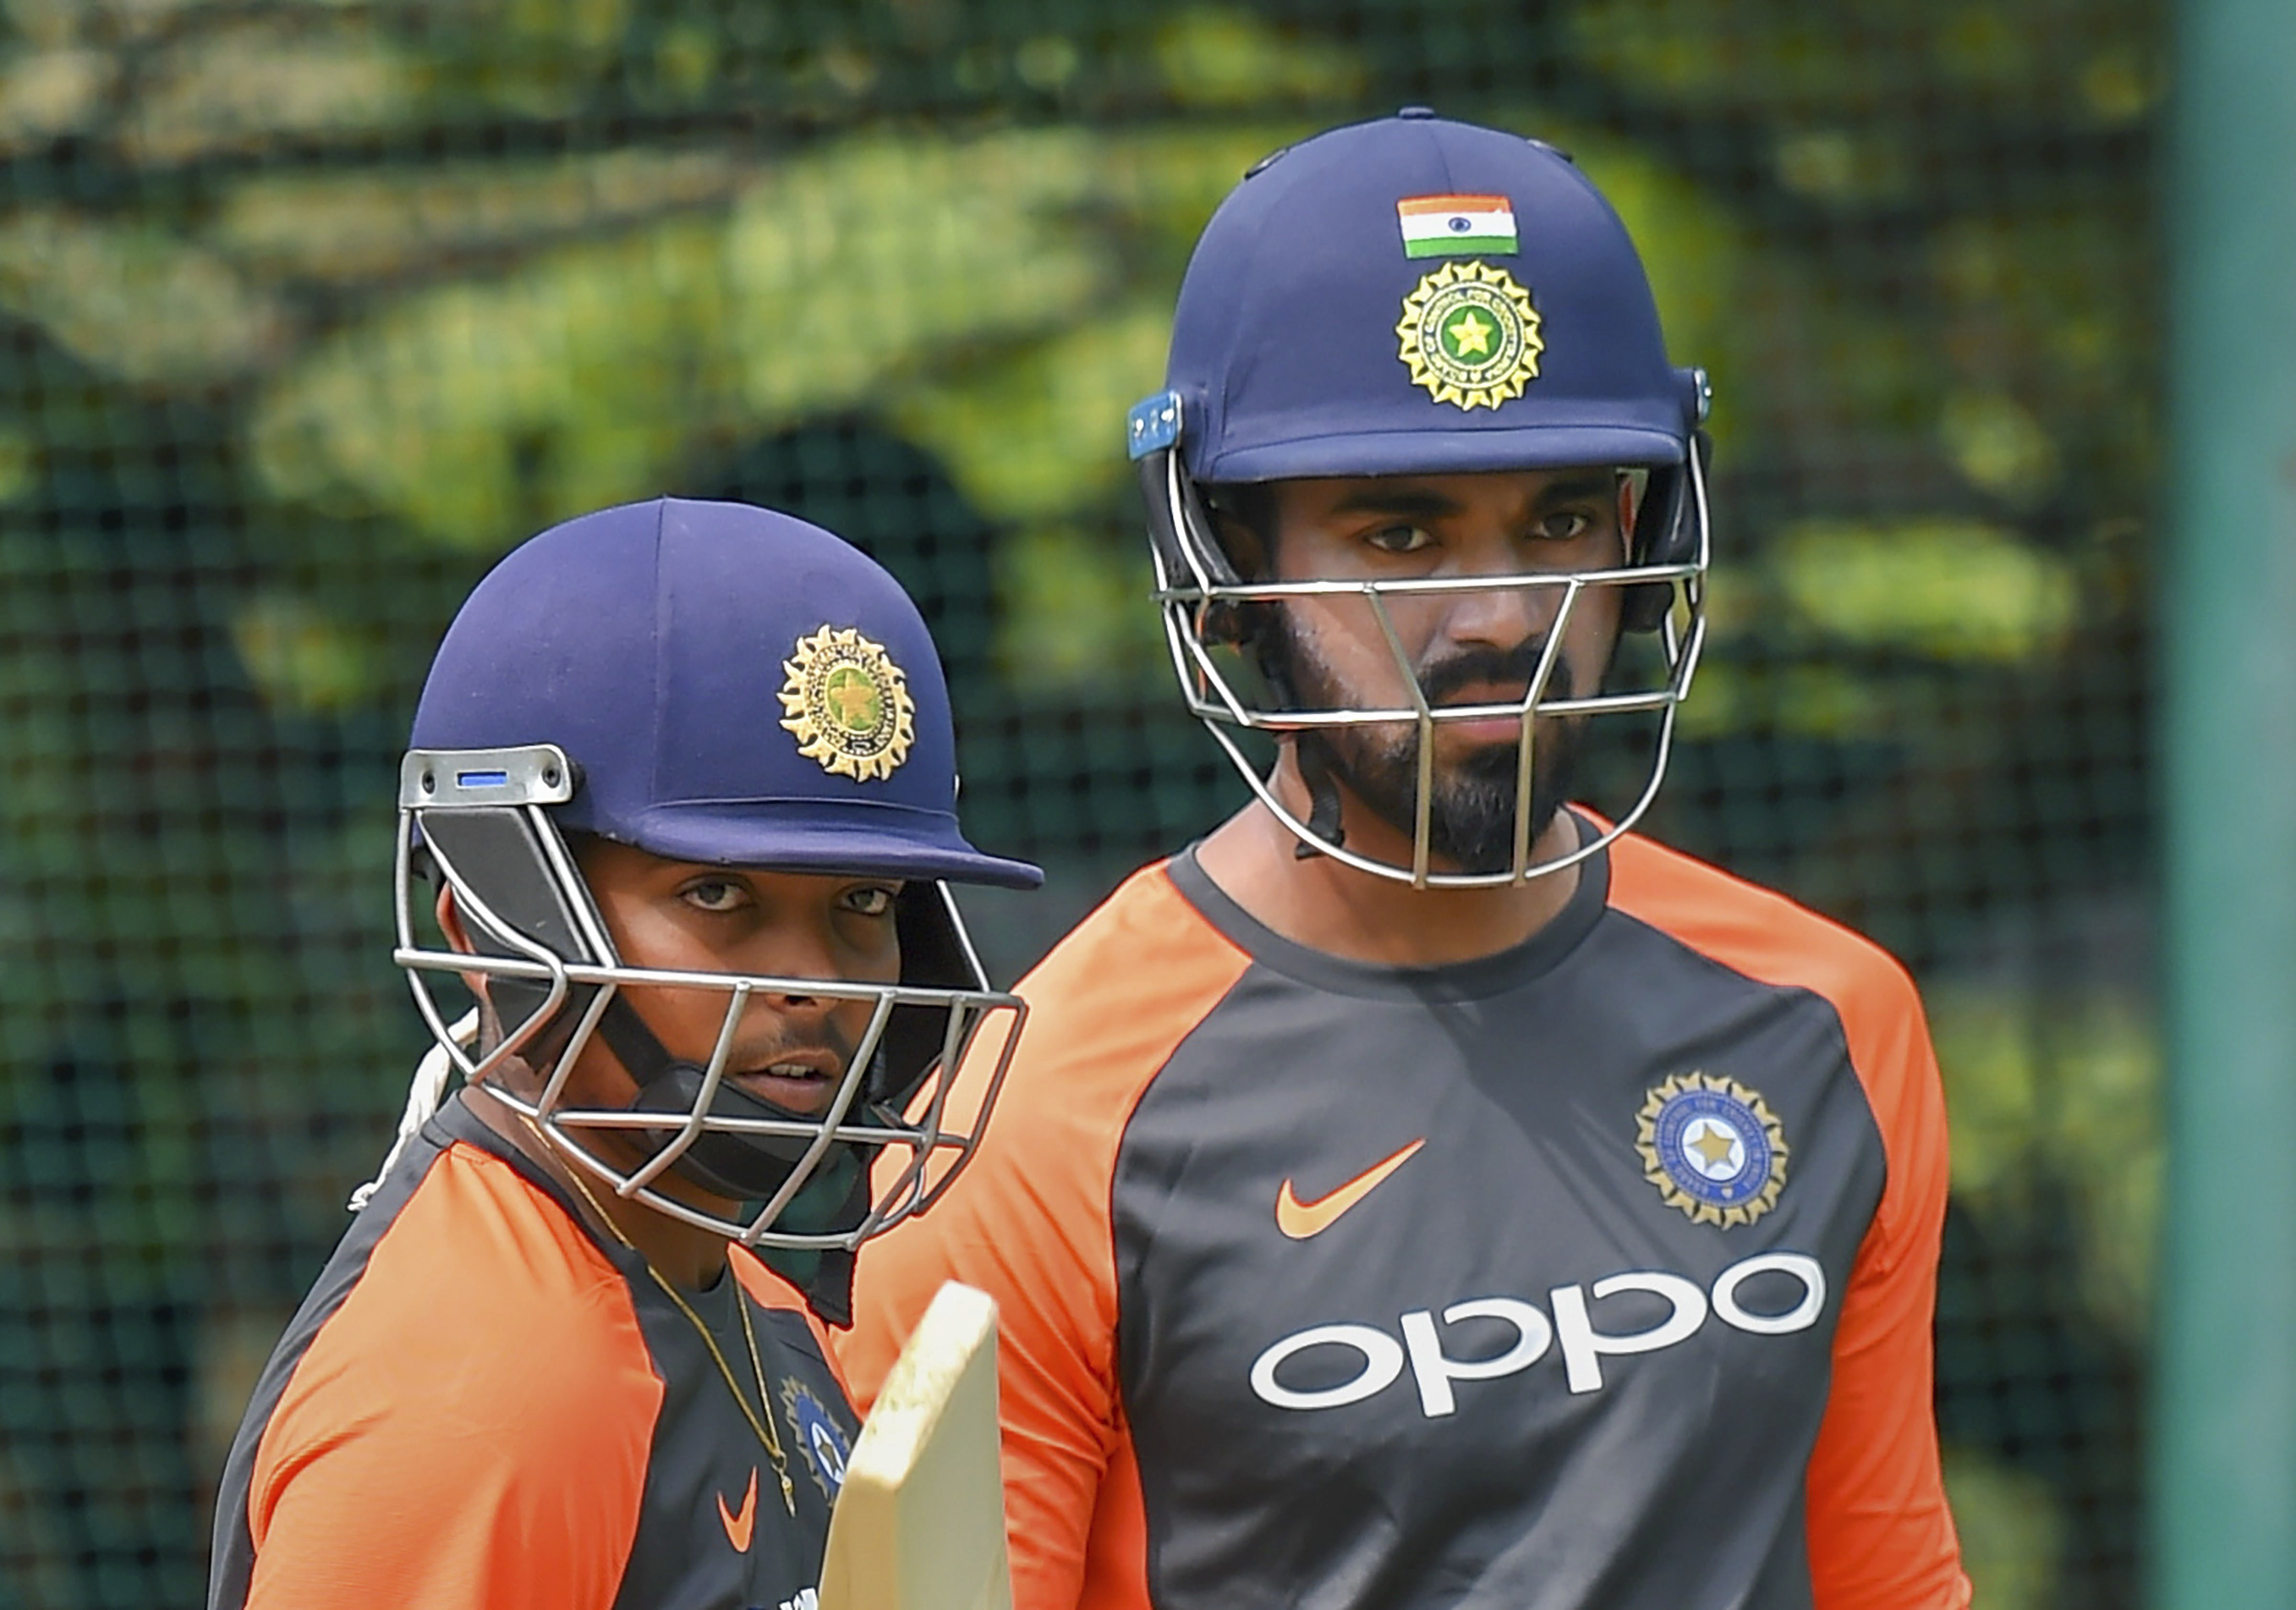 Indian cricketers Prithvi Shaw and Lokesh Rahul during a practice session ahead of India-West Indies second cricket test match, in Hyderabad - AP